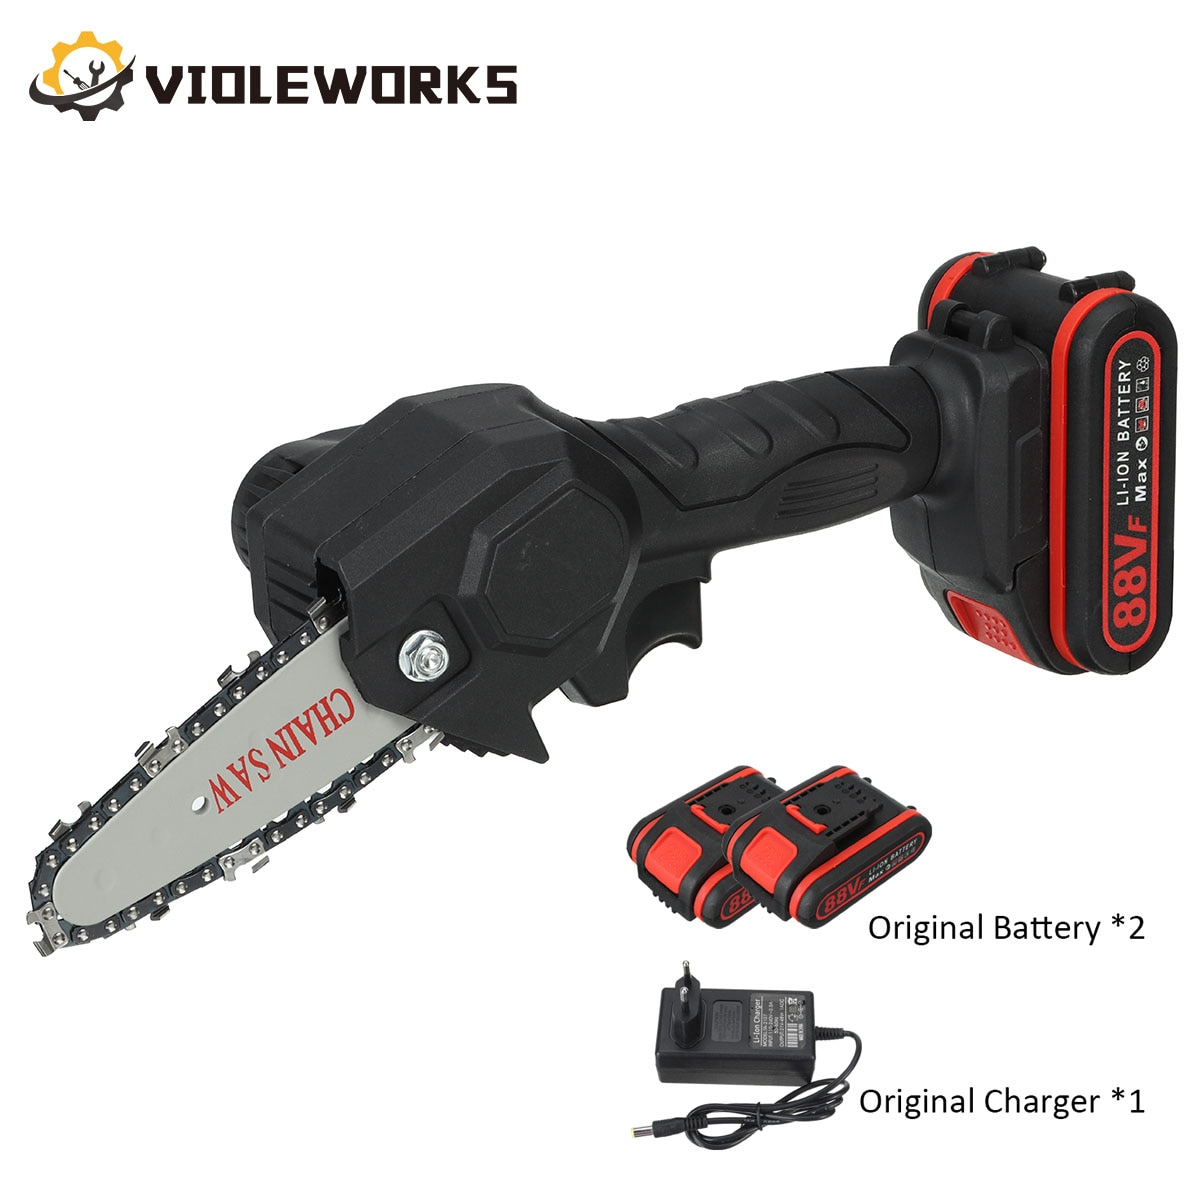 4 Inch 88V 1080W Mini Electric Chain Saw With 2PC Battery Rechargeable One-handed Woodworking Pruning Garden Tool EU Plug